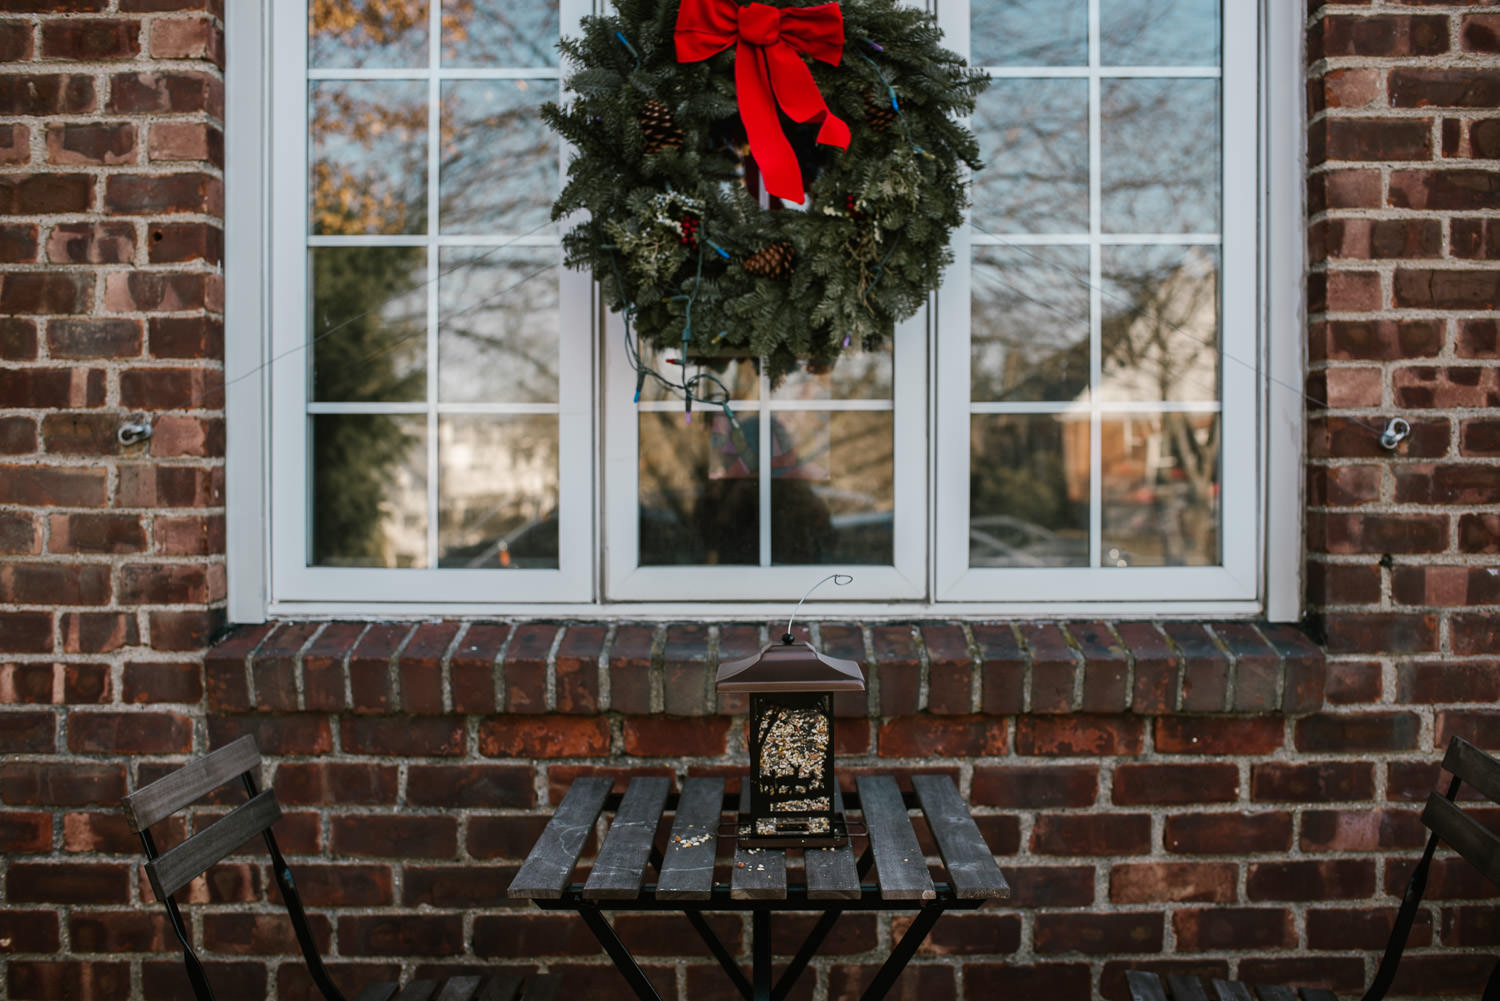 A wreath hangs outside on a window.